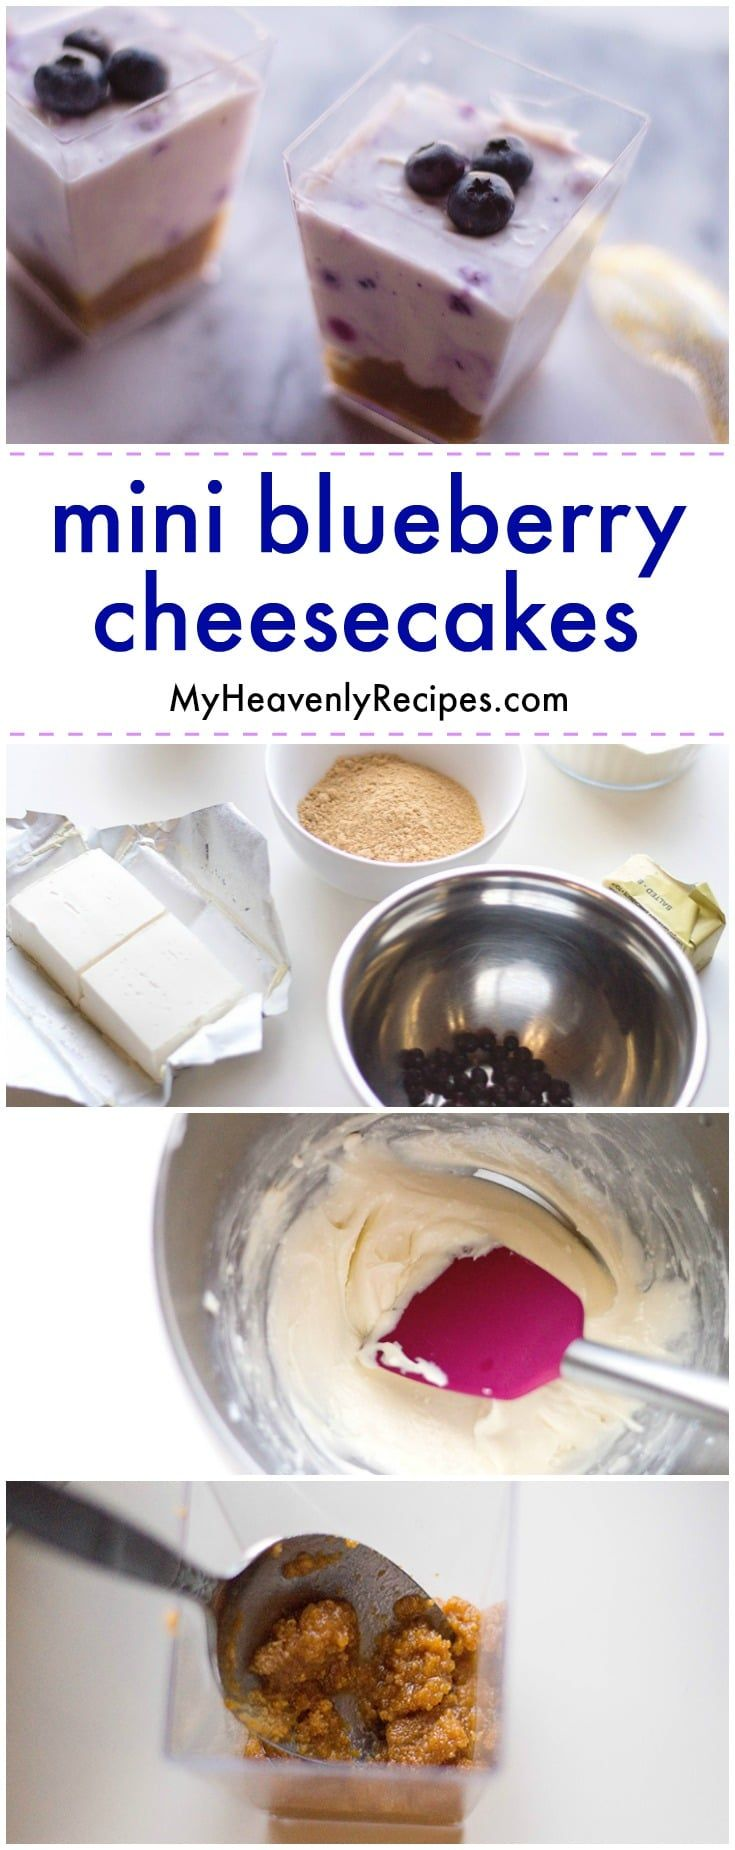 Ready for a delicious no bake dessert recipe? Try these Mini Blueberry Cheesecakes! This no bake blueberry cheesecake recipe is about as good as dessert gets. #nobake #nobakedessert #cheesecake #blueberrycheesecake #nobakeblueberrycheesecake via @heavenlyrecipe